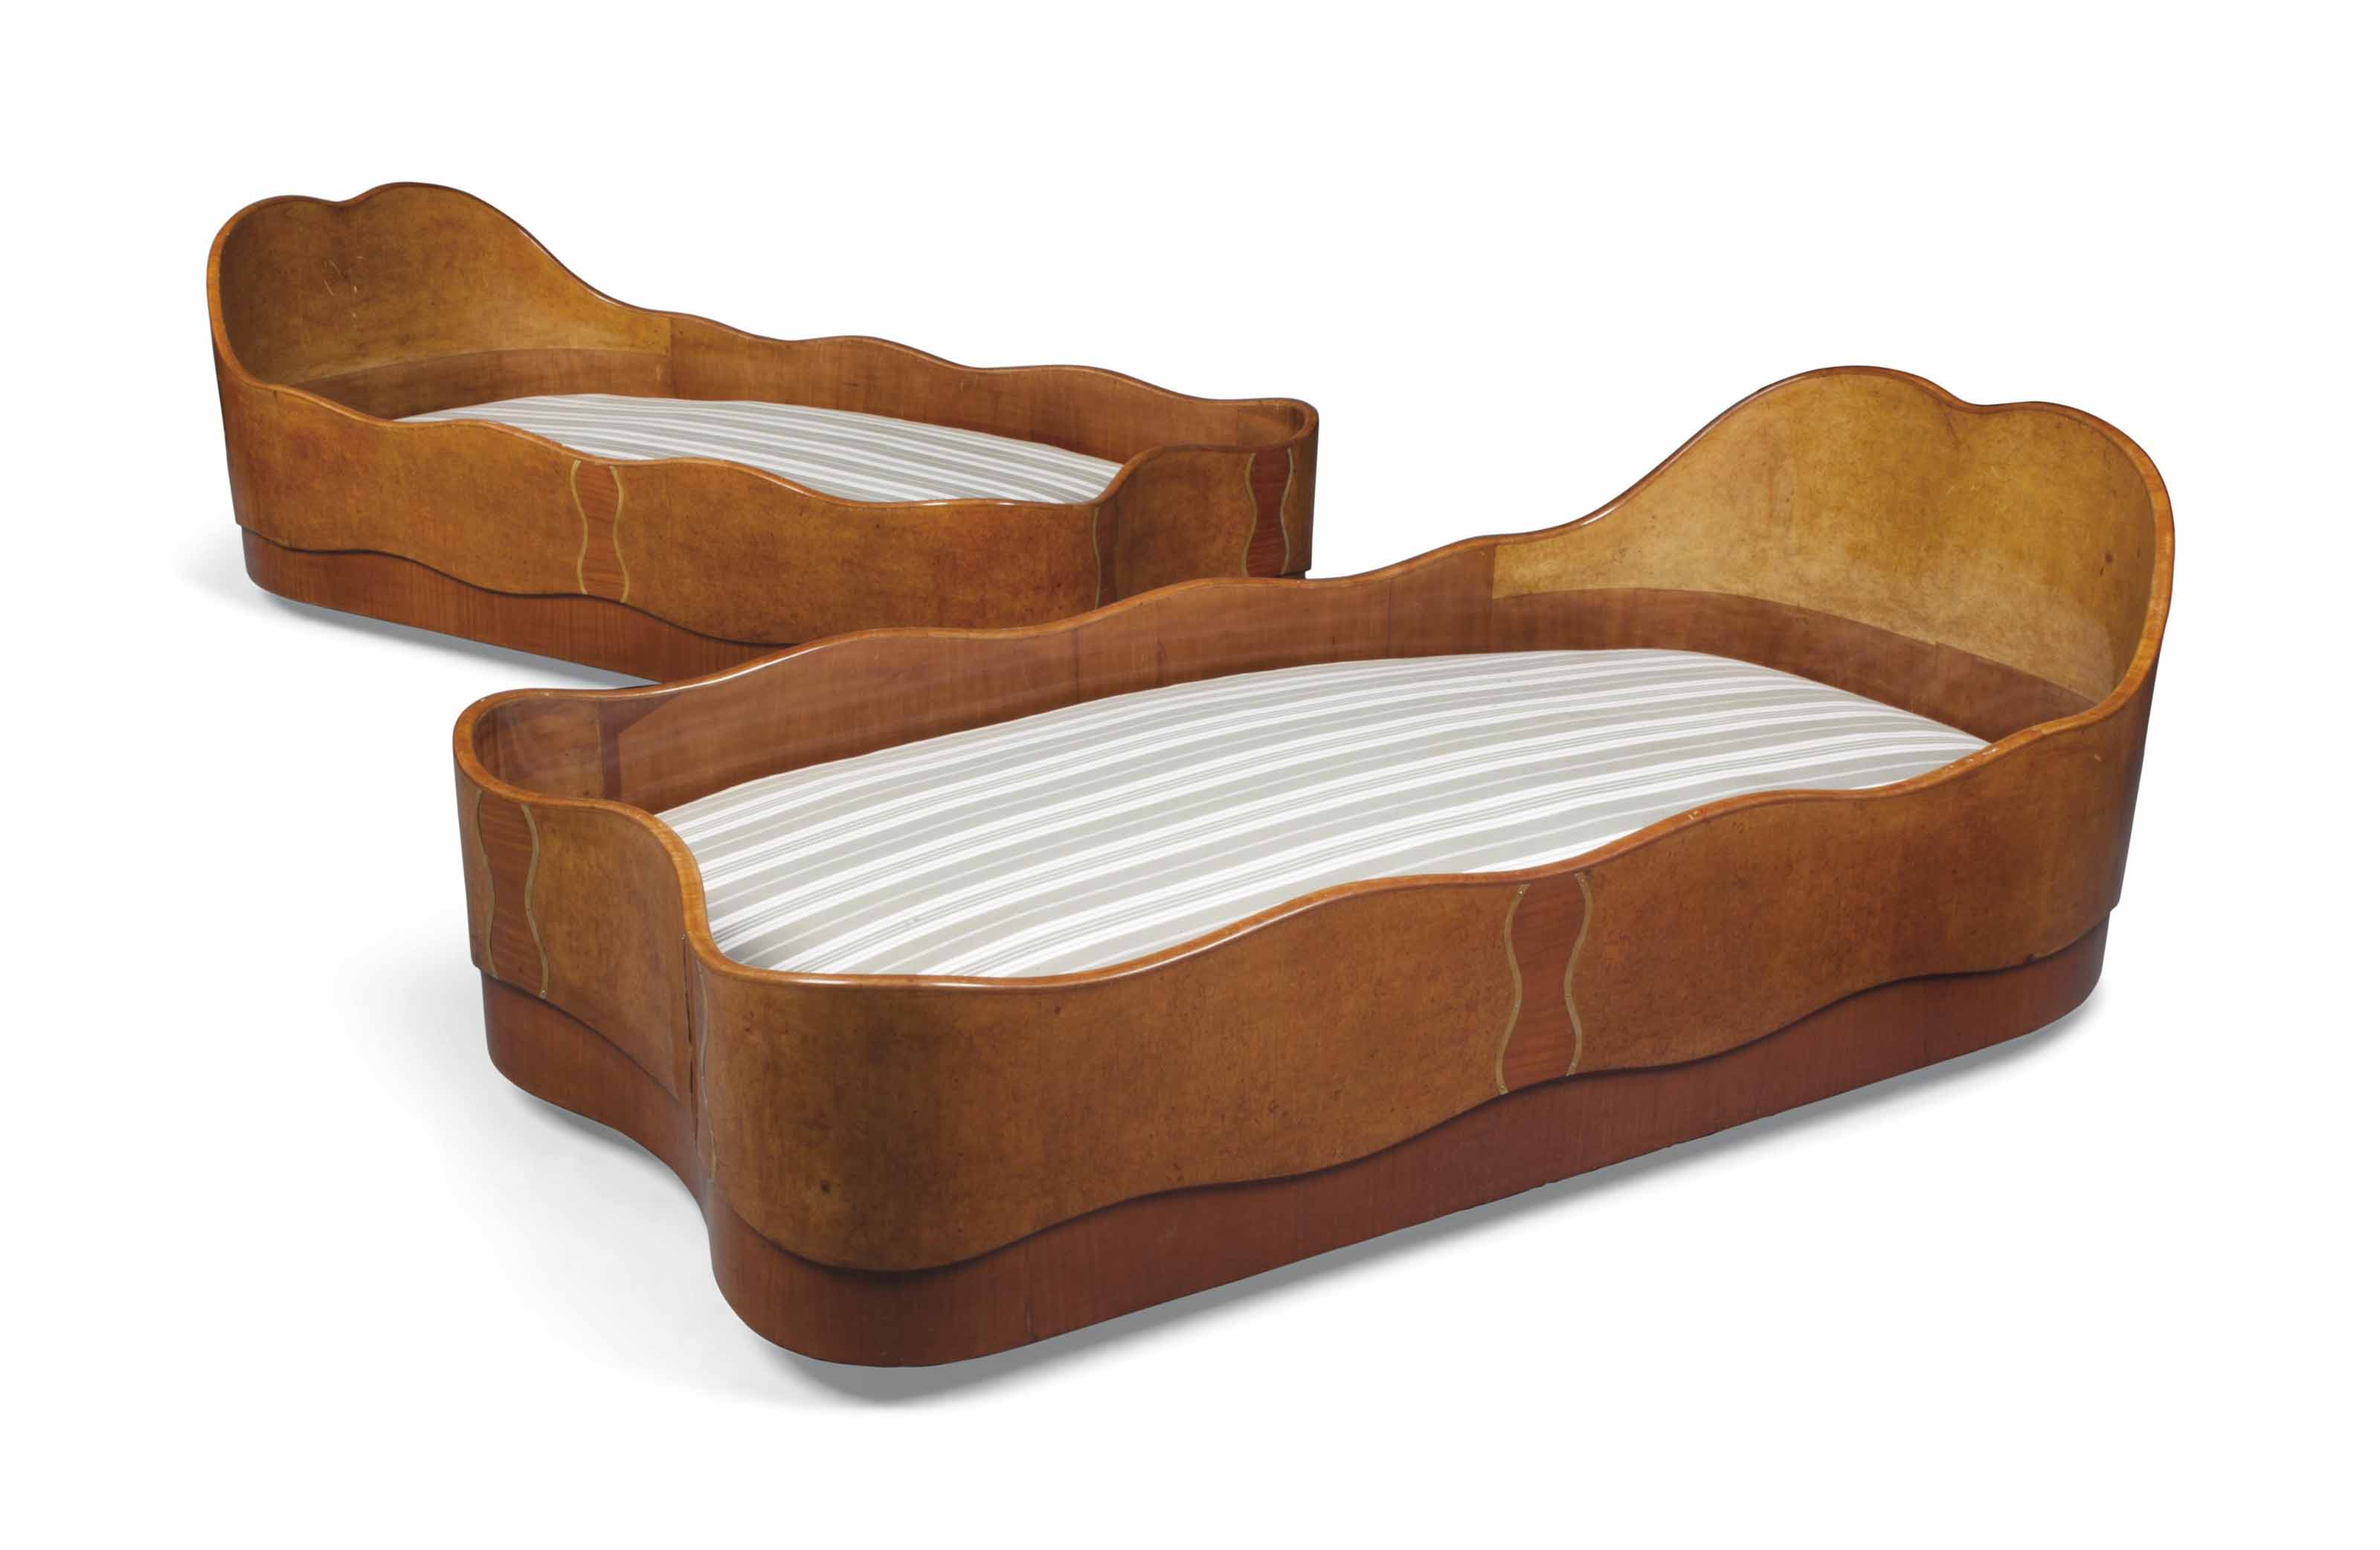 A PAIR OF MAURICE DUFRENE (1976-1955) CHERRY AND BURR WALNUT SINGLE BEDS